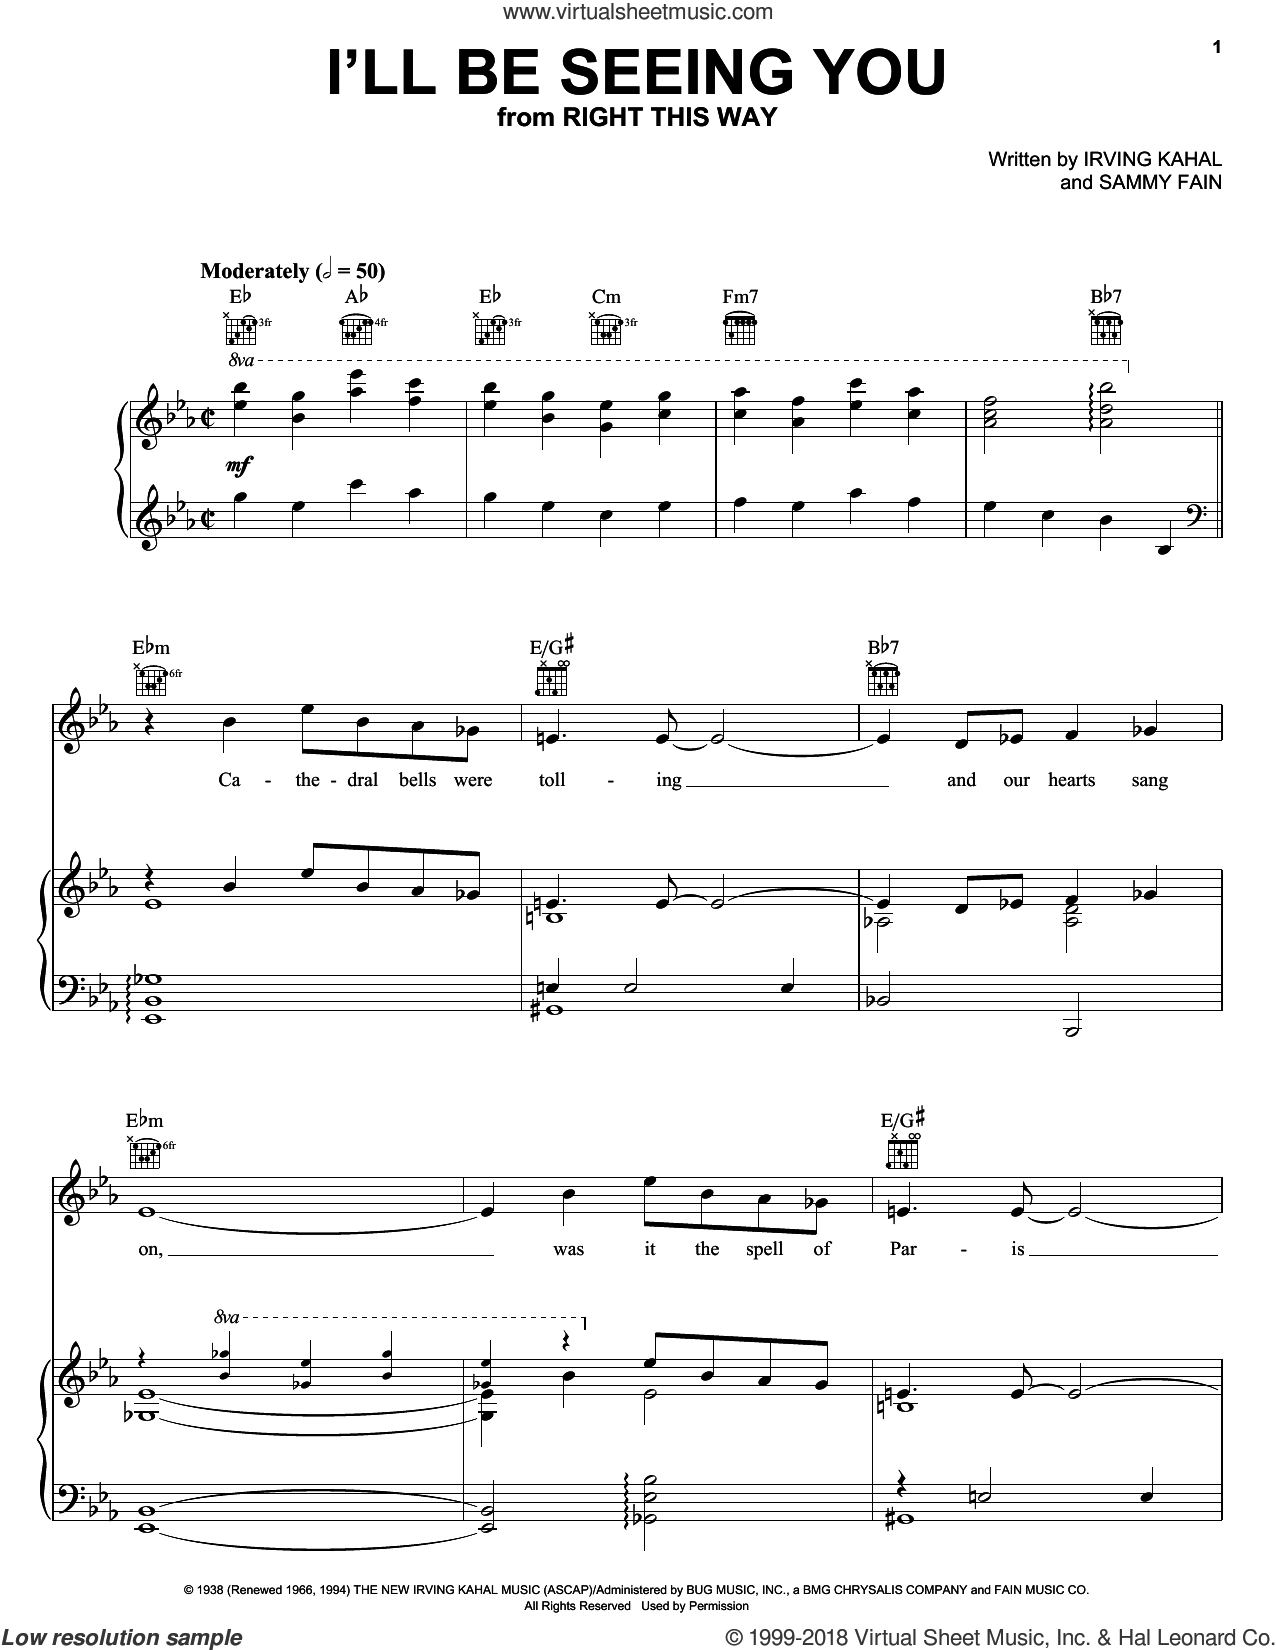 I'll Be Seeing You sheet music for voice, piano or guitar by Frank Sinatra, Irving Kahal and Sammy Fain, intermediate skill level